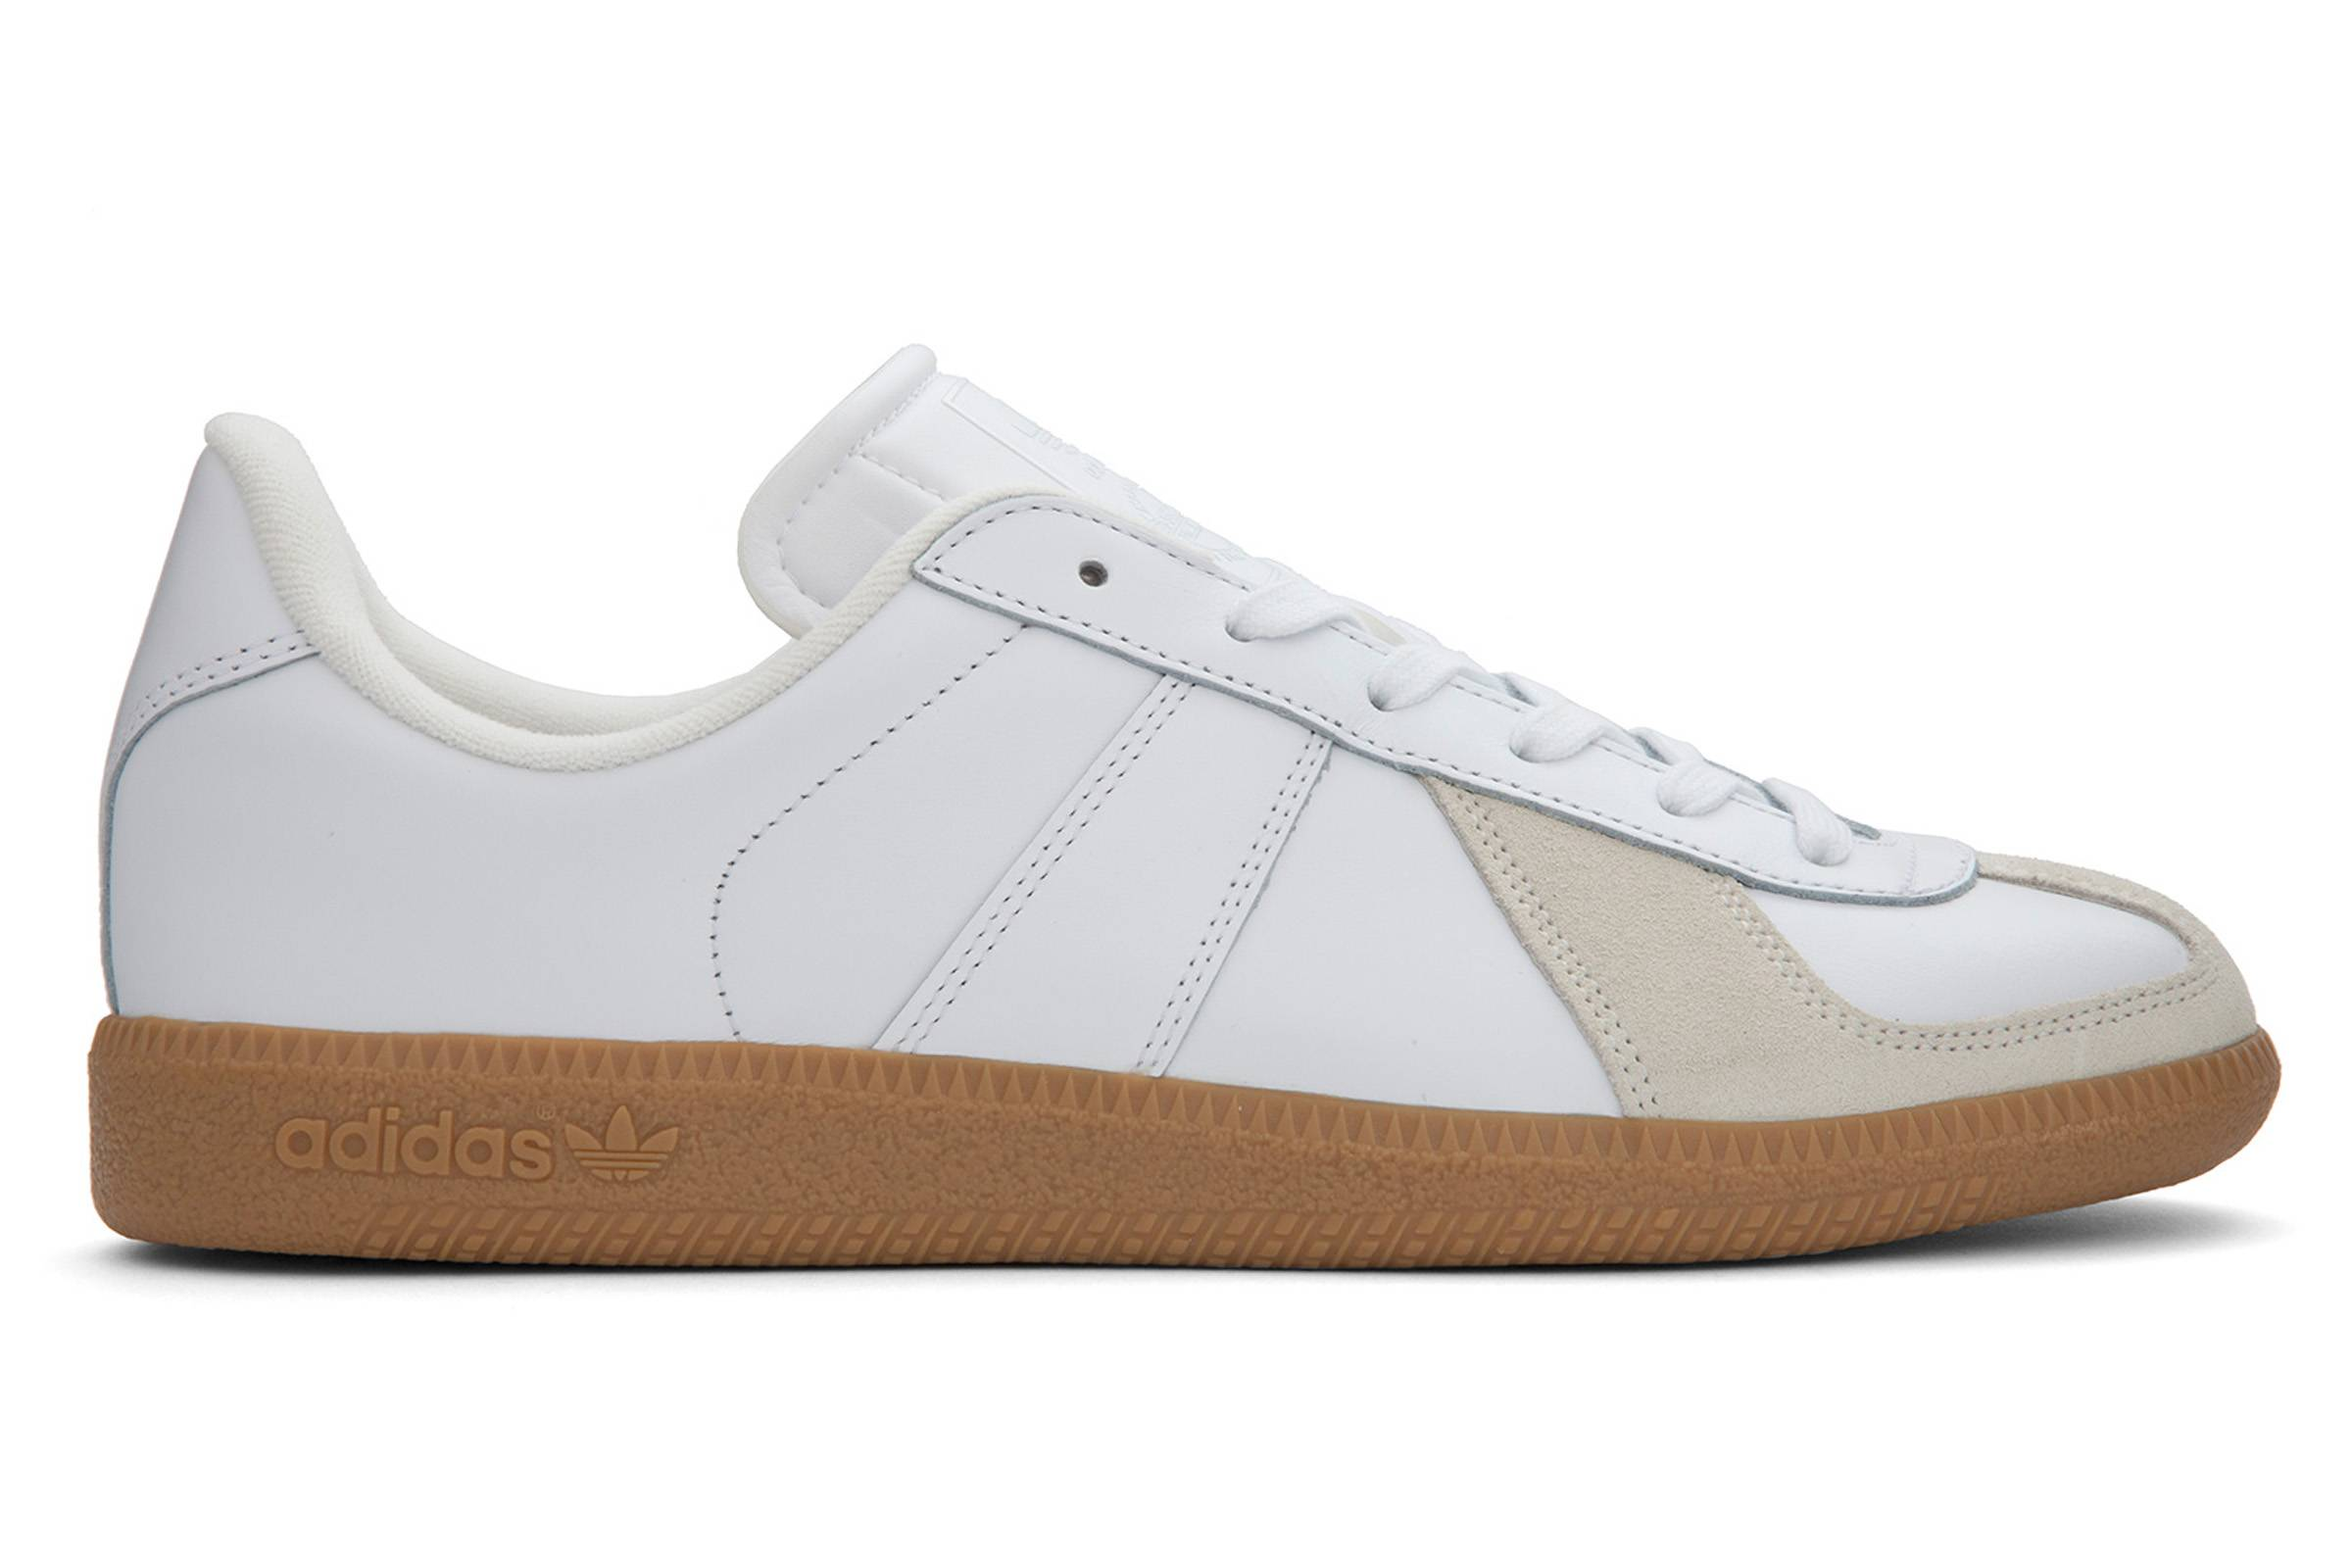 premium selection b73e1 c78a0 Although the German Army Trainer is now widely known as a quintessential  high-end sneaker due to Martin Margiela's reinterpretation and  dissemination of the ...